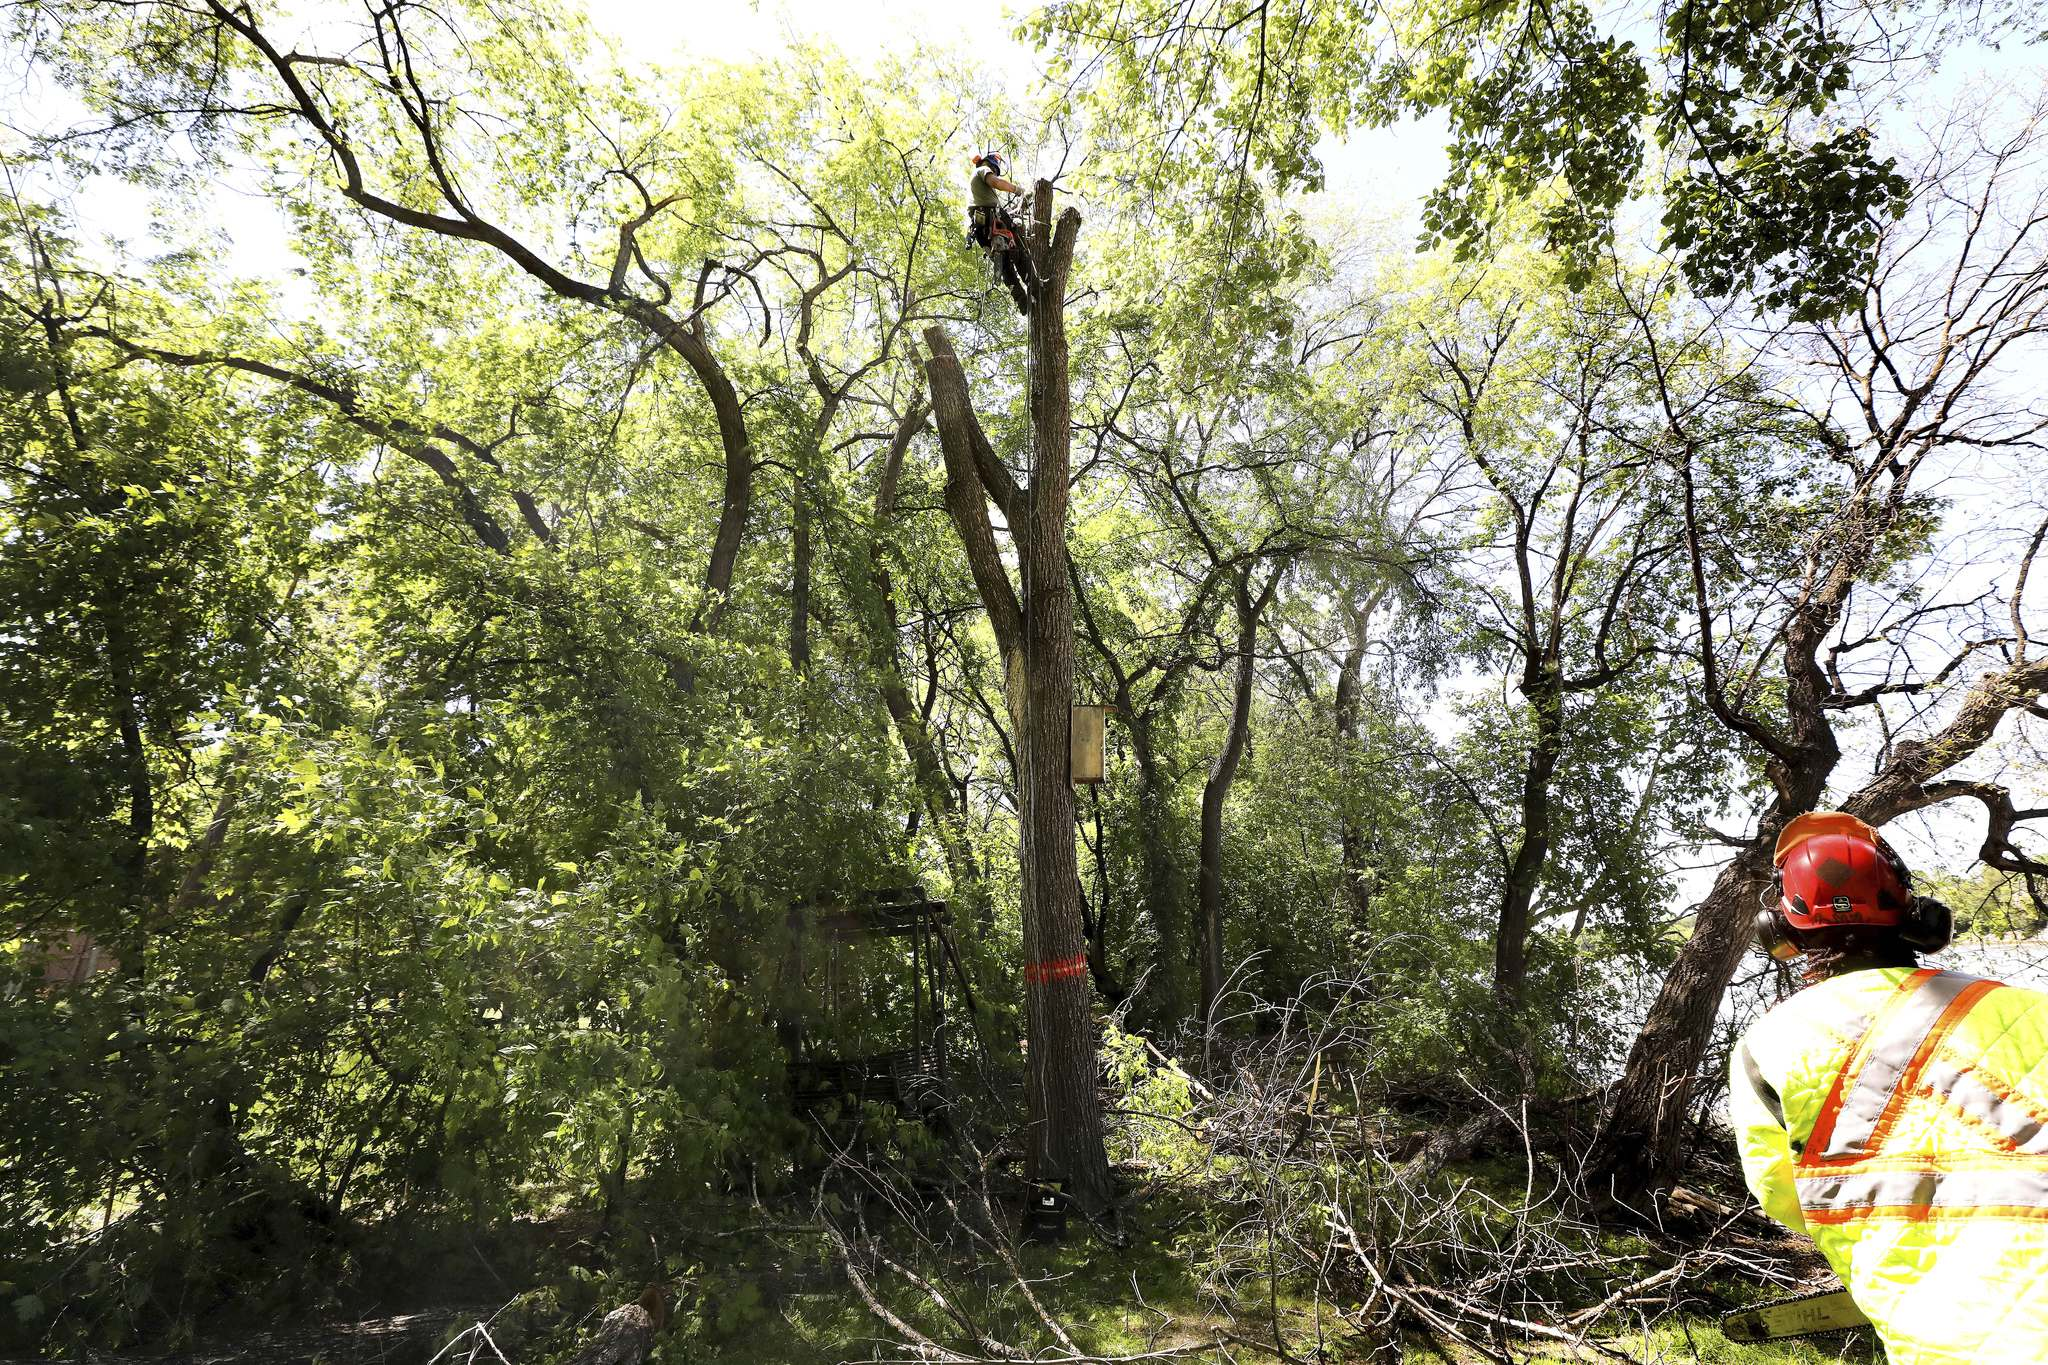 RUTH BONNEVILLE / WINNIPEG FREE PRESS</p><p>City of Winnipeg arborist Rick Vogel brings down a diseased elm, located along the Red River near Henderson Highway, one section at a time.</p>